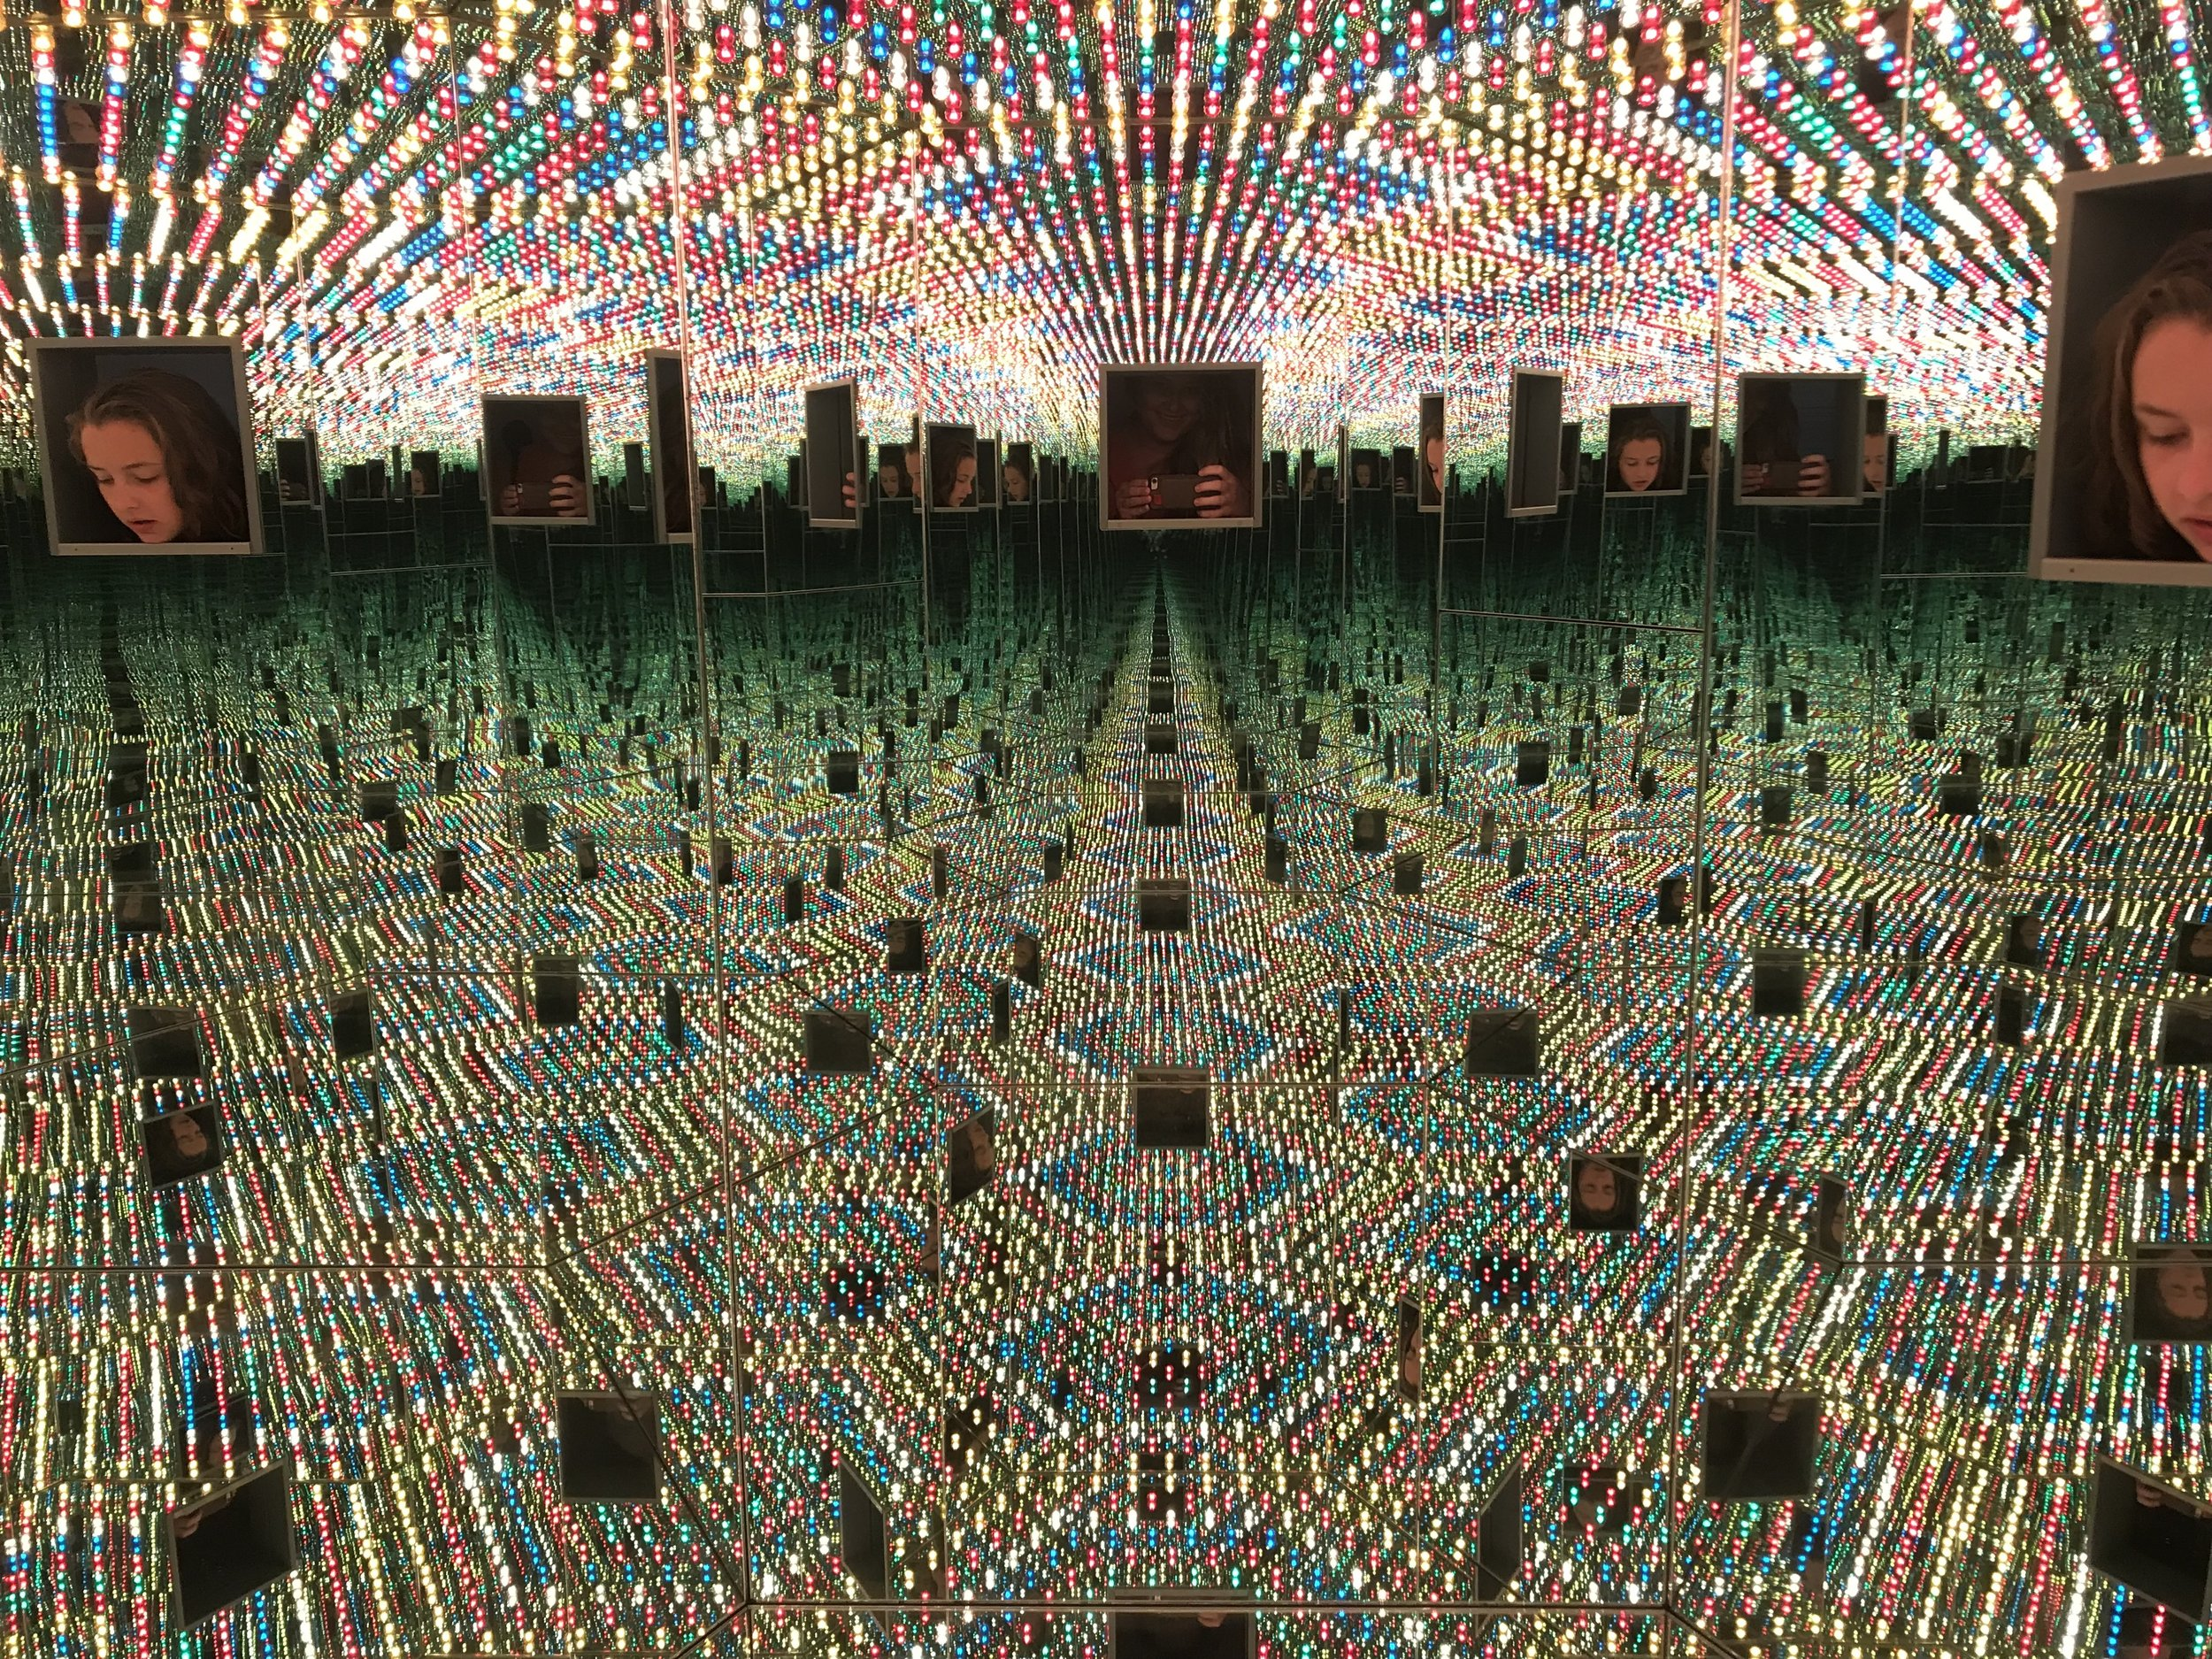 Infinity Mirrors at Cleveland Museum of Art